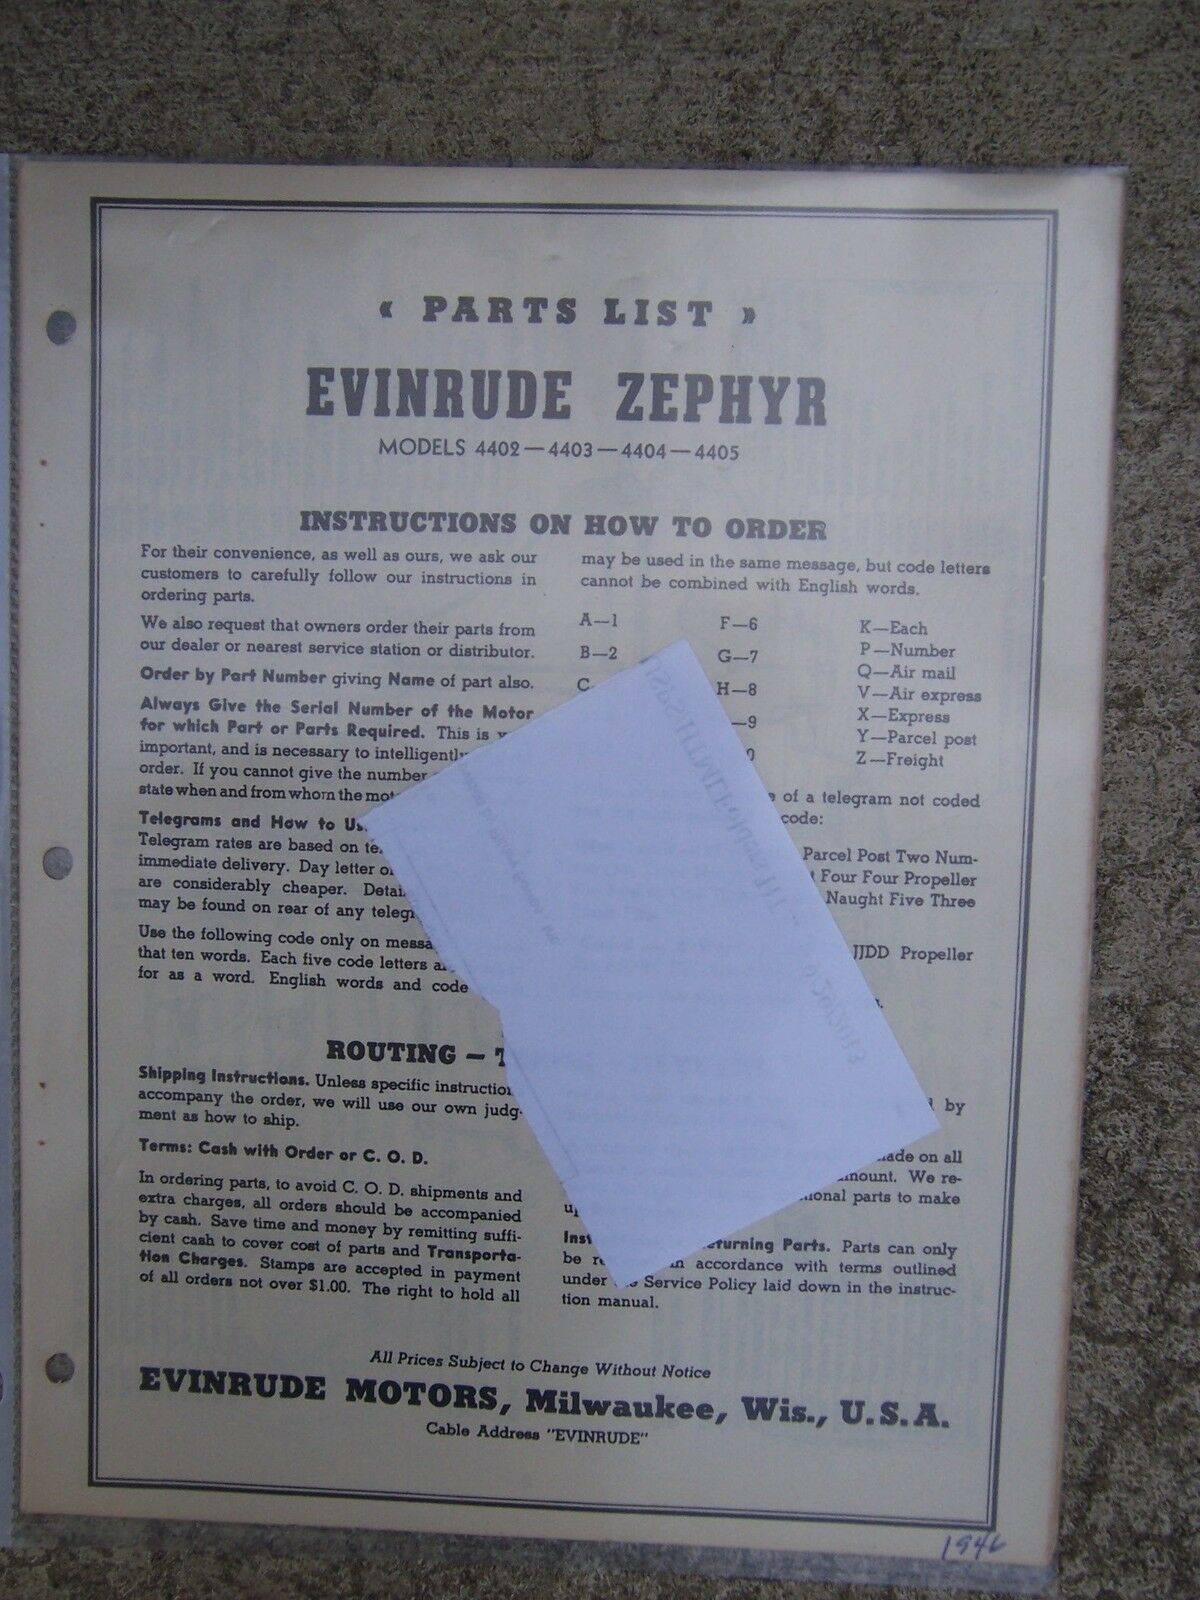 1946 Evinrude Zephyr Outboard Parts List 4402 4403 4404 4405 MORE IN STORE  L 1 of 1Only 1 available ...